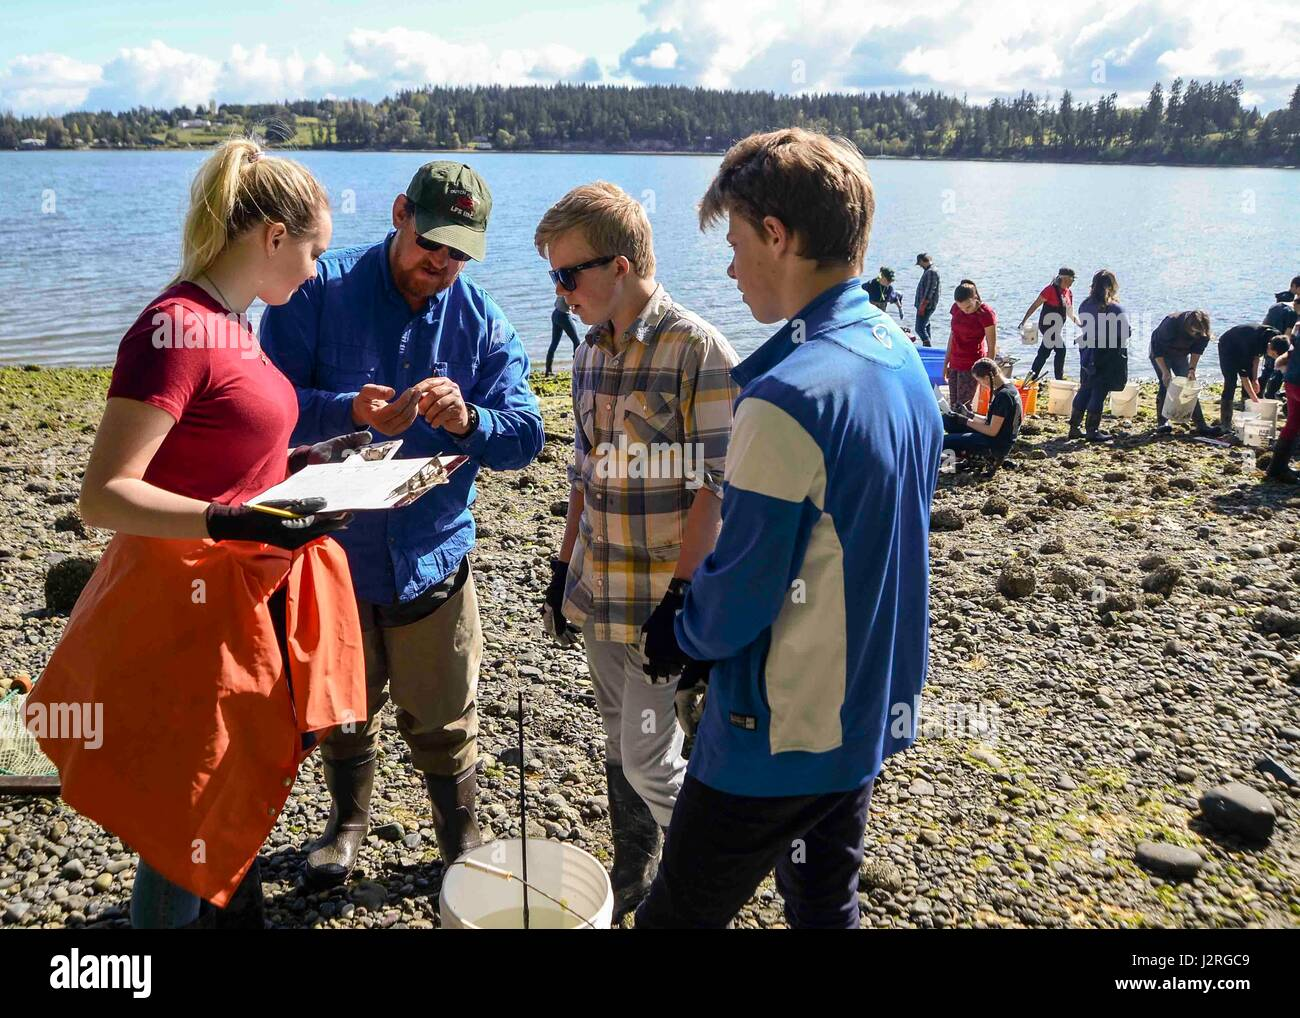 170428-N-VH385-112 INDIAN ISLAND, Wash., (April 28, 2017) – Lyle Britt, a reasearcher with the Alaska Fishery and - Stock Image